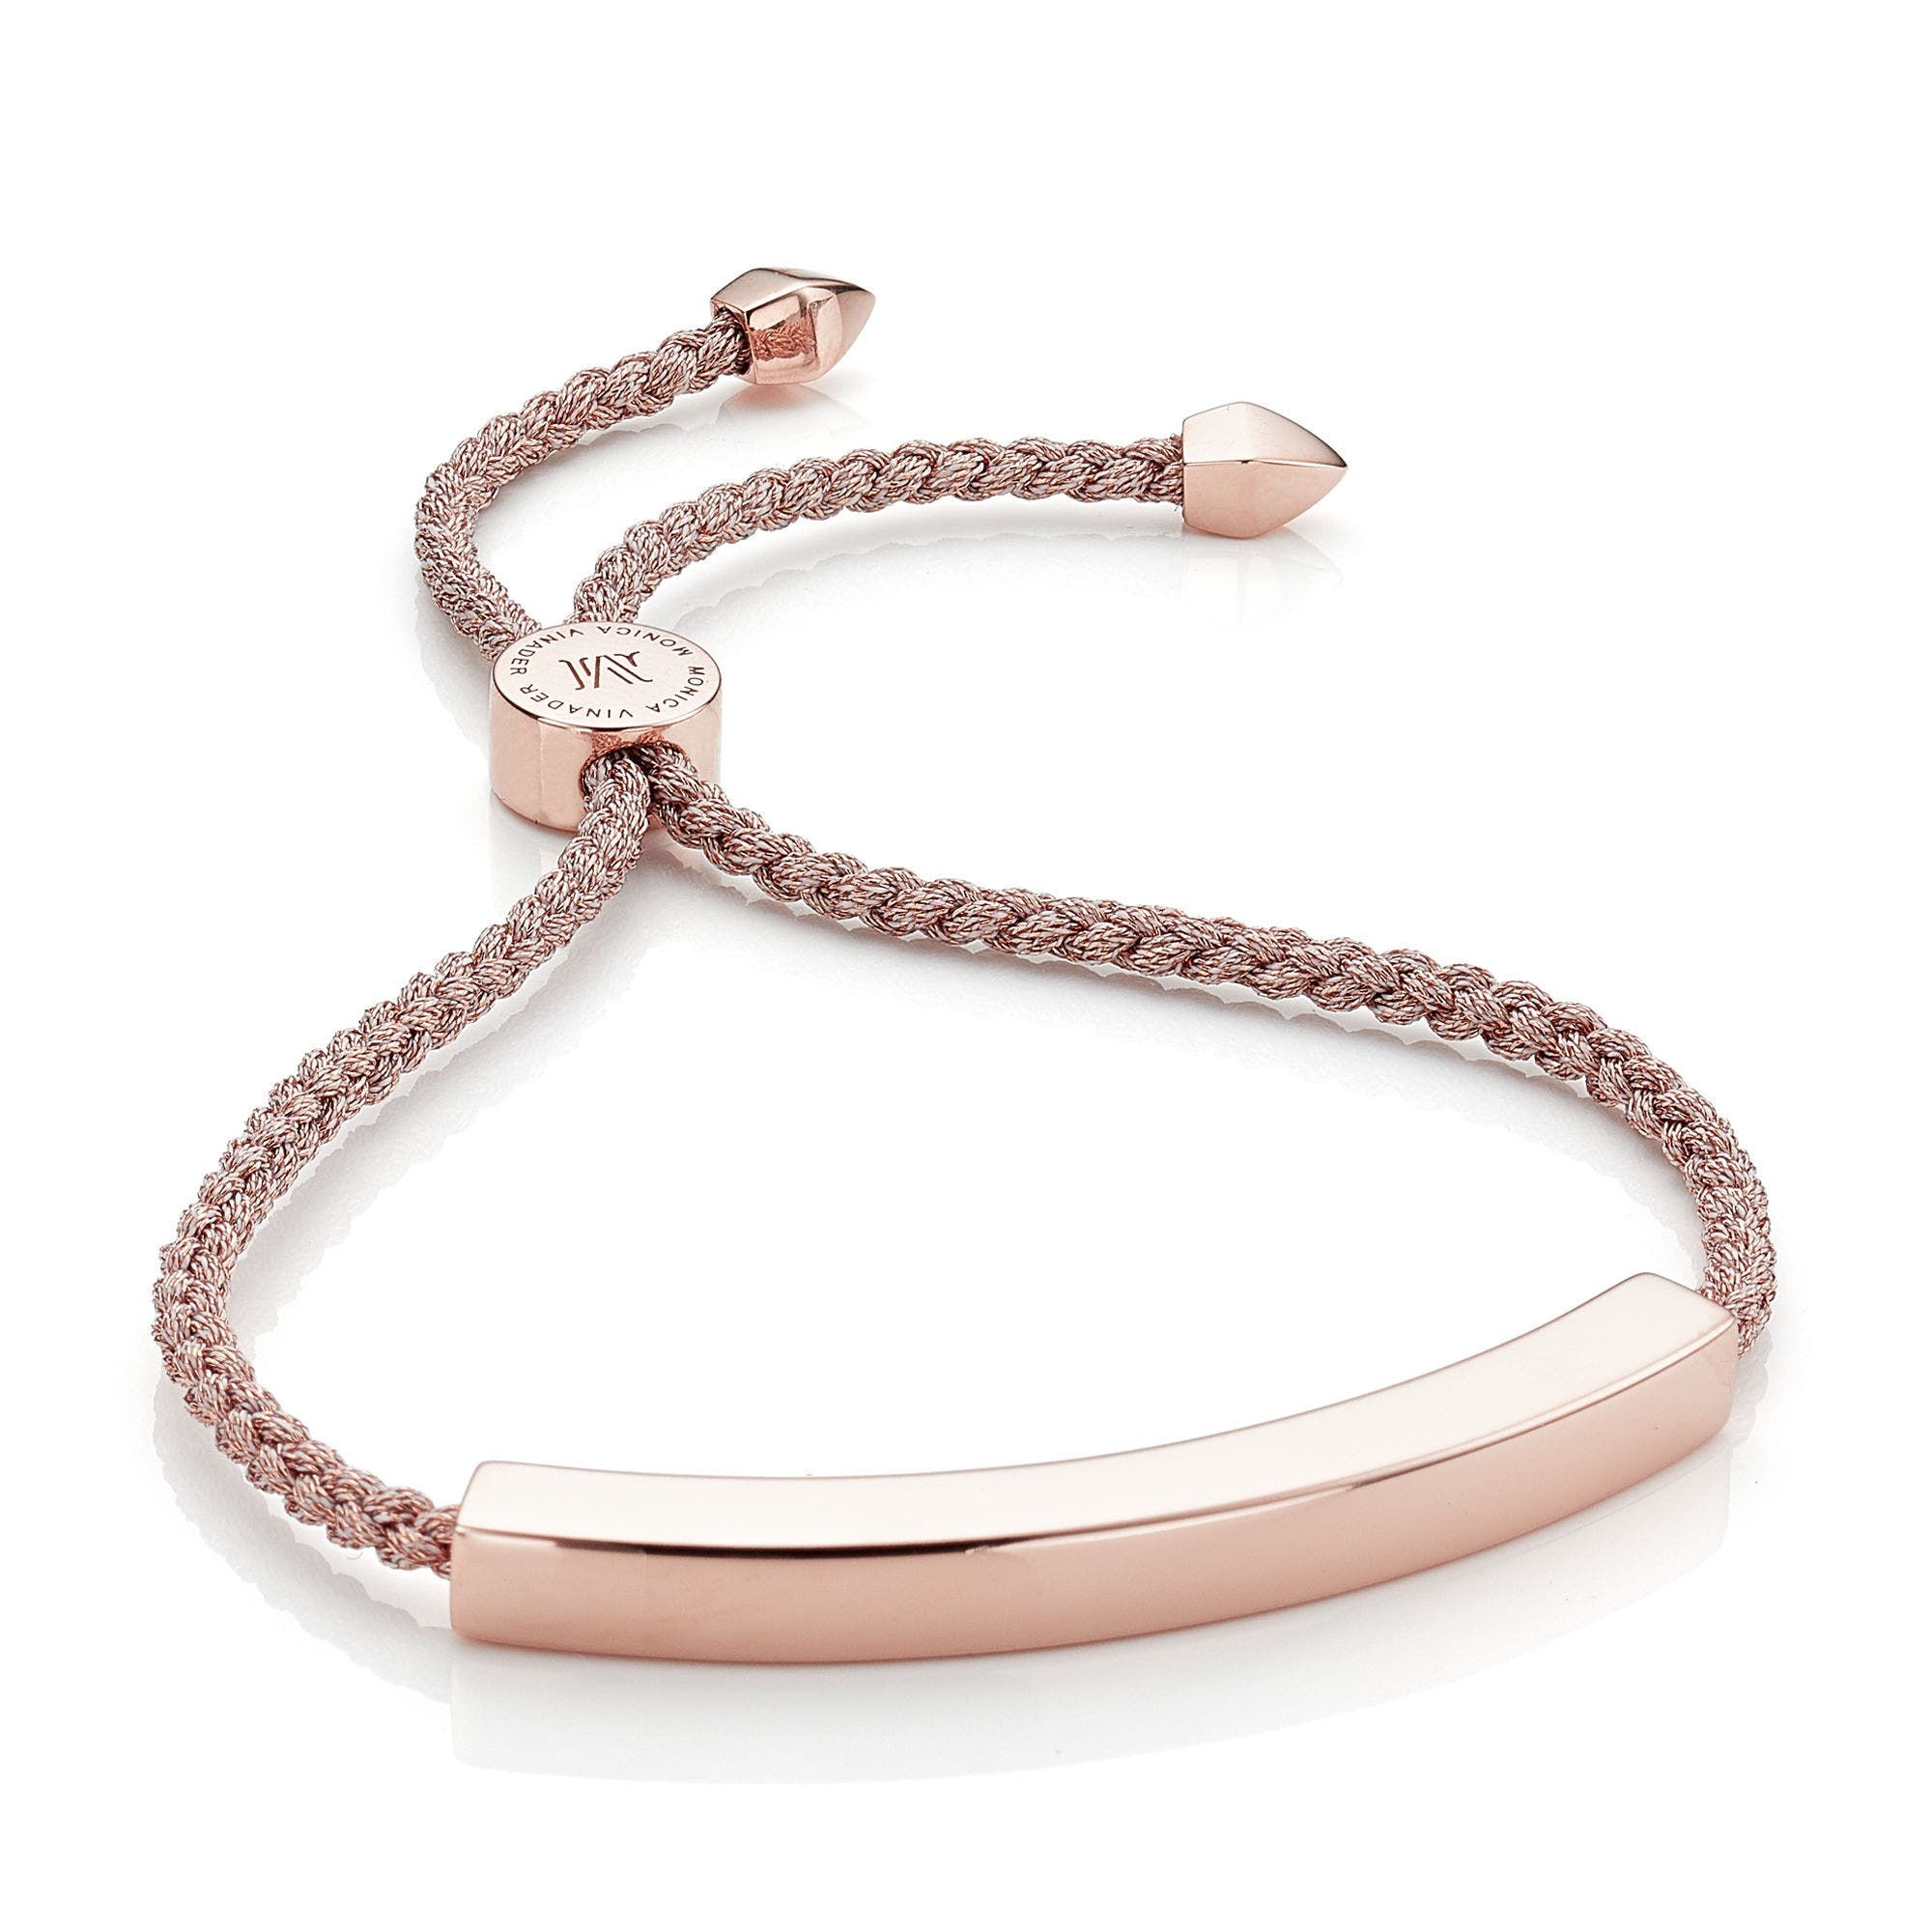 Engravable Large Linear Friendship Bracelet,                         Main,                         color, Metallic/ Rose Gold